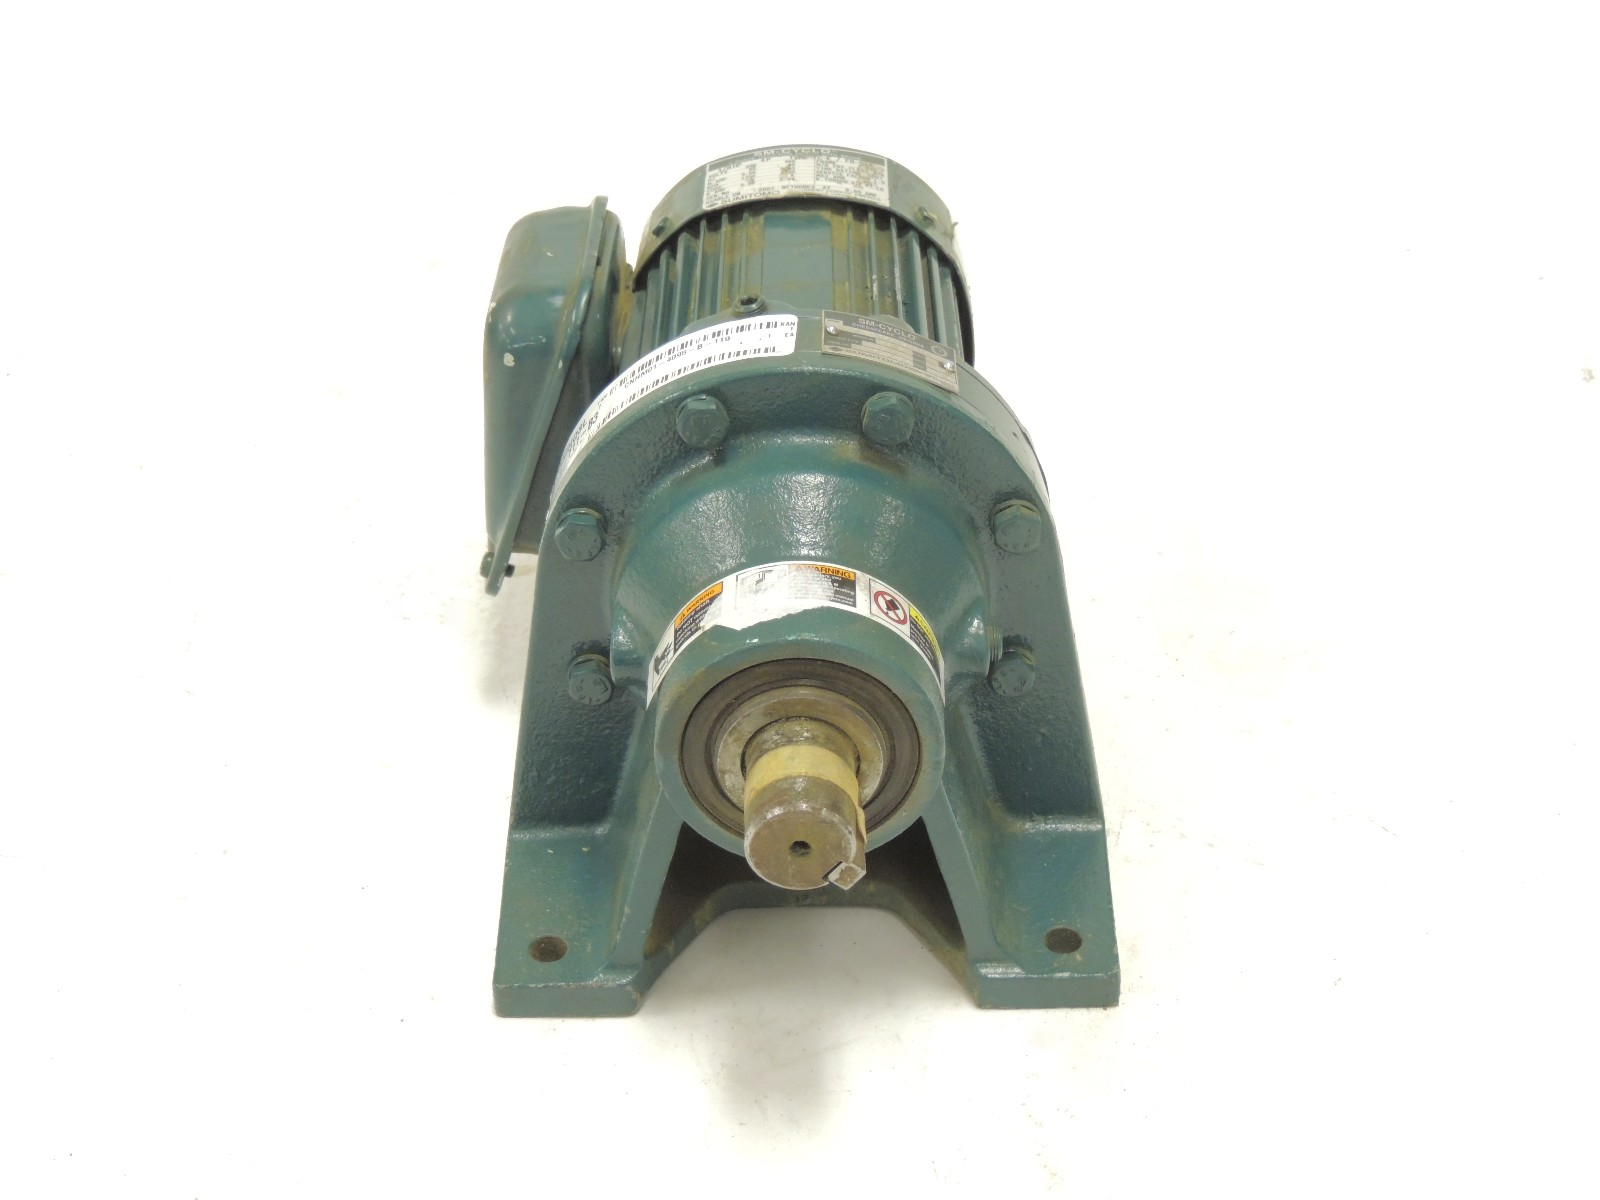 New Surplus Sumitomo Sm Cyclo Gear Motor Cnhm01 4095 B 119 3 Phase 1 8 H P